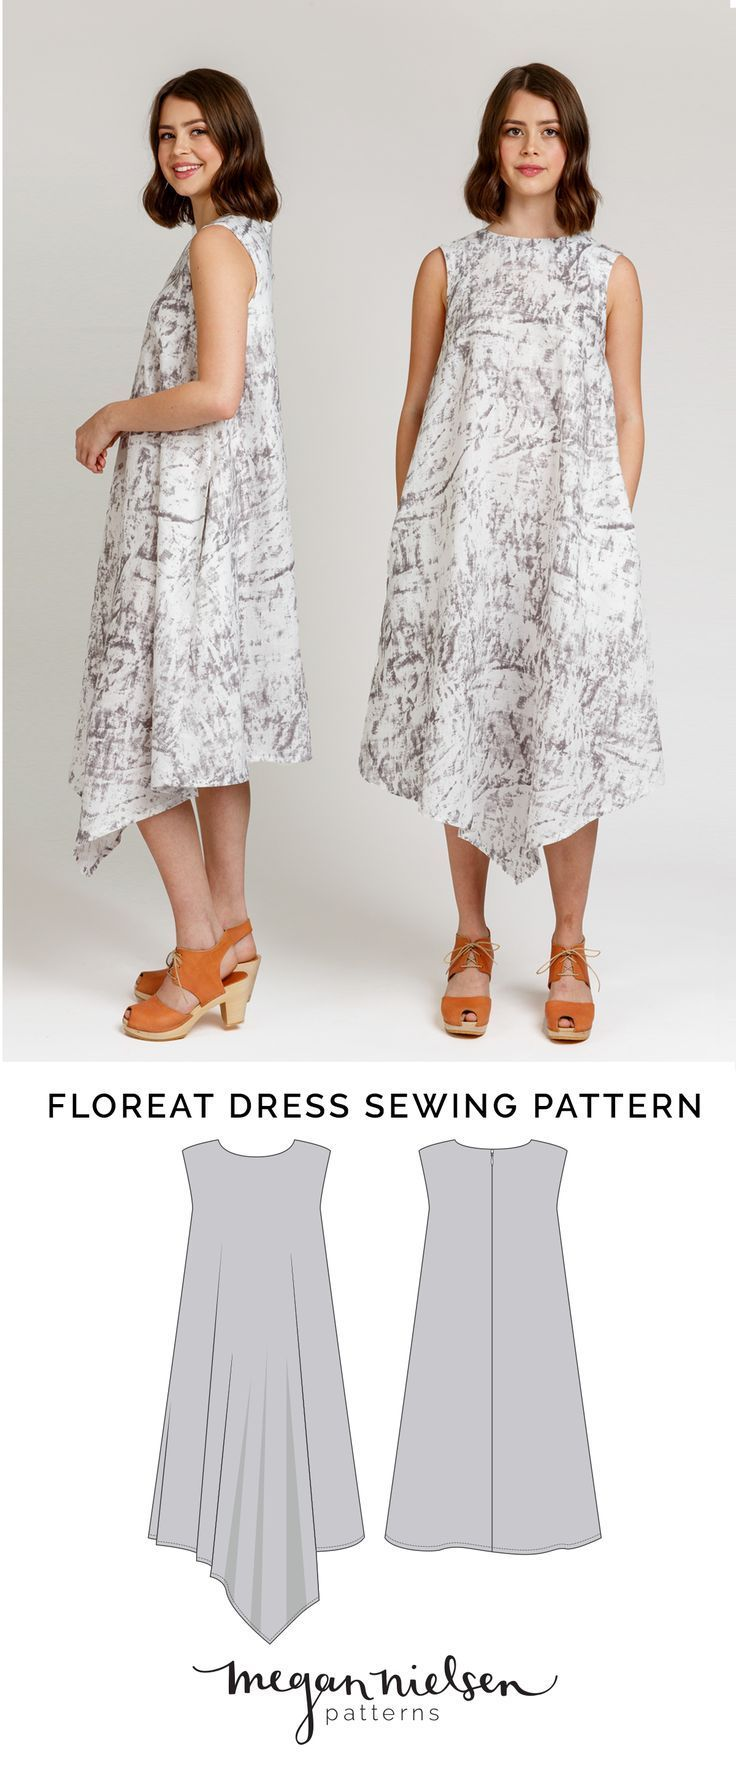 Floreat is an asymmetrical dress or blouse that can be made from woven or